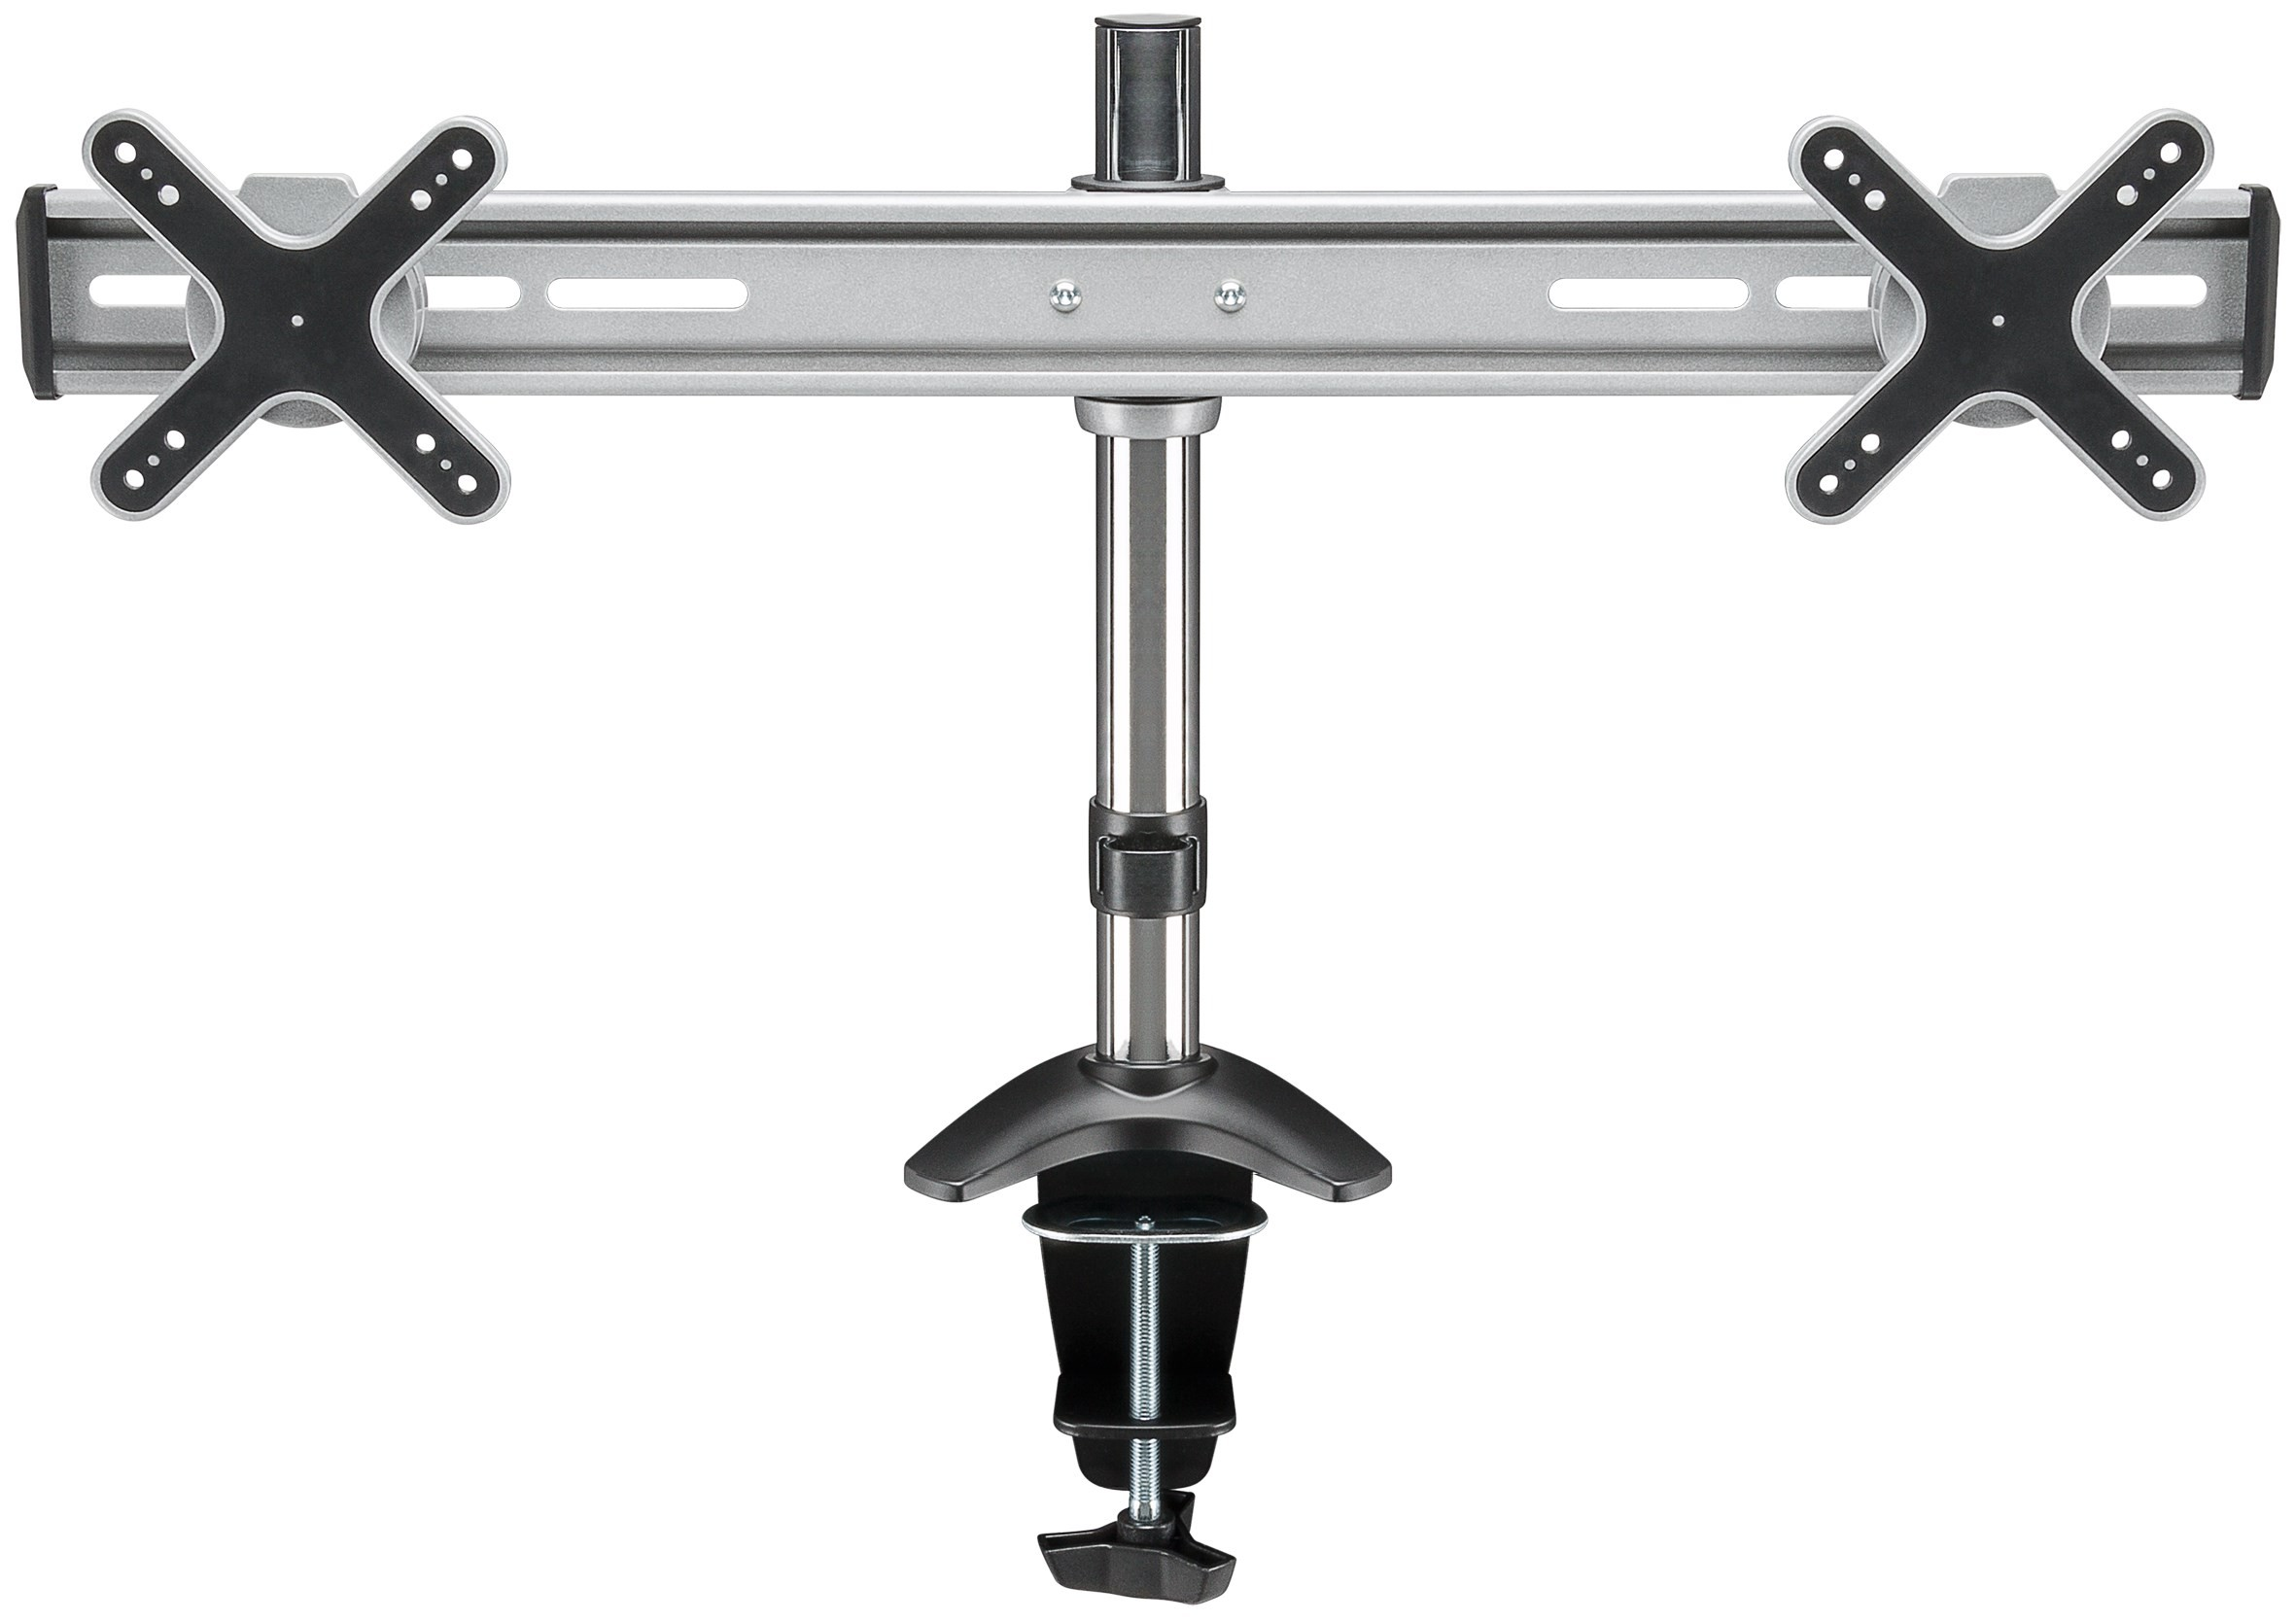 Goobay ScreenFlex Twin table mount bracket